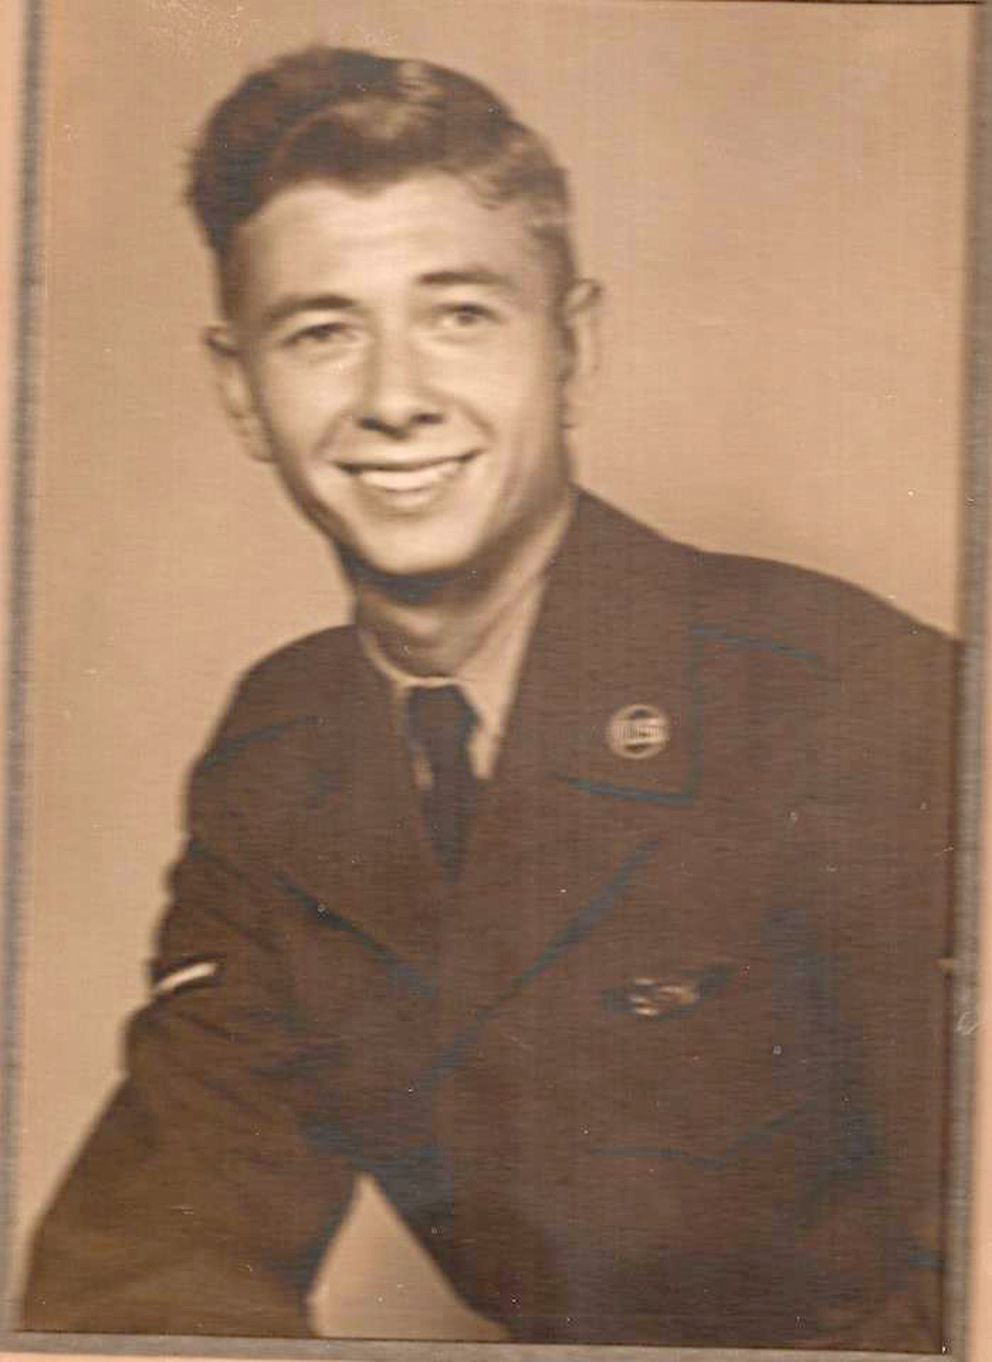 Wayne Dean Jackson, airman 3rd class in the U.S. Air Force, was 21 when he perished in the 1952 plane crash on Mount Gannett. (Courtesy Vicki Dodson)